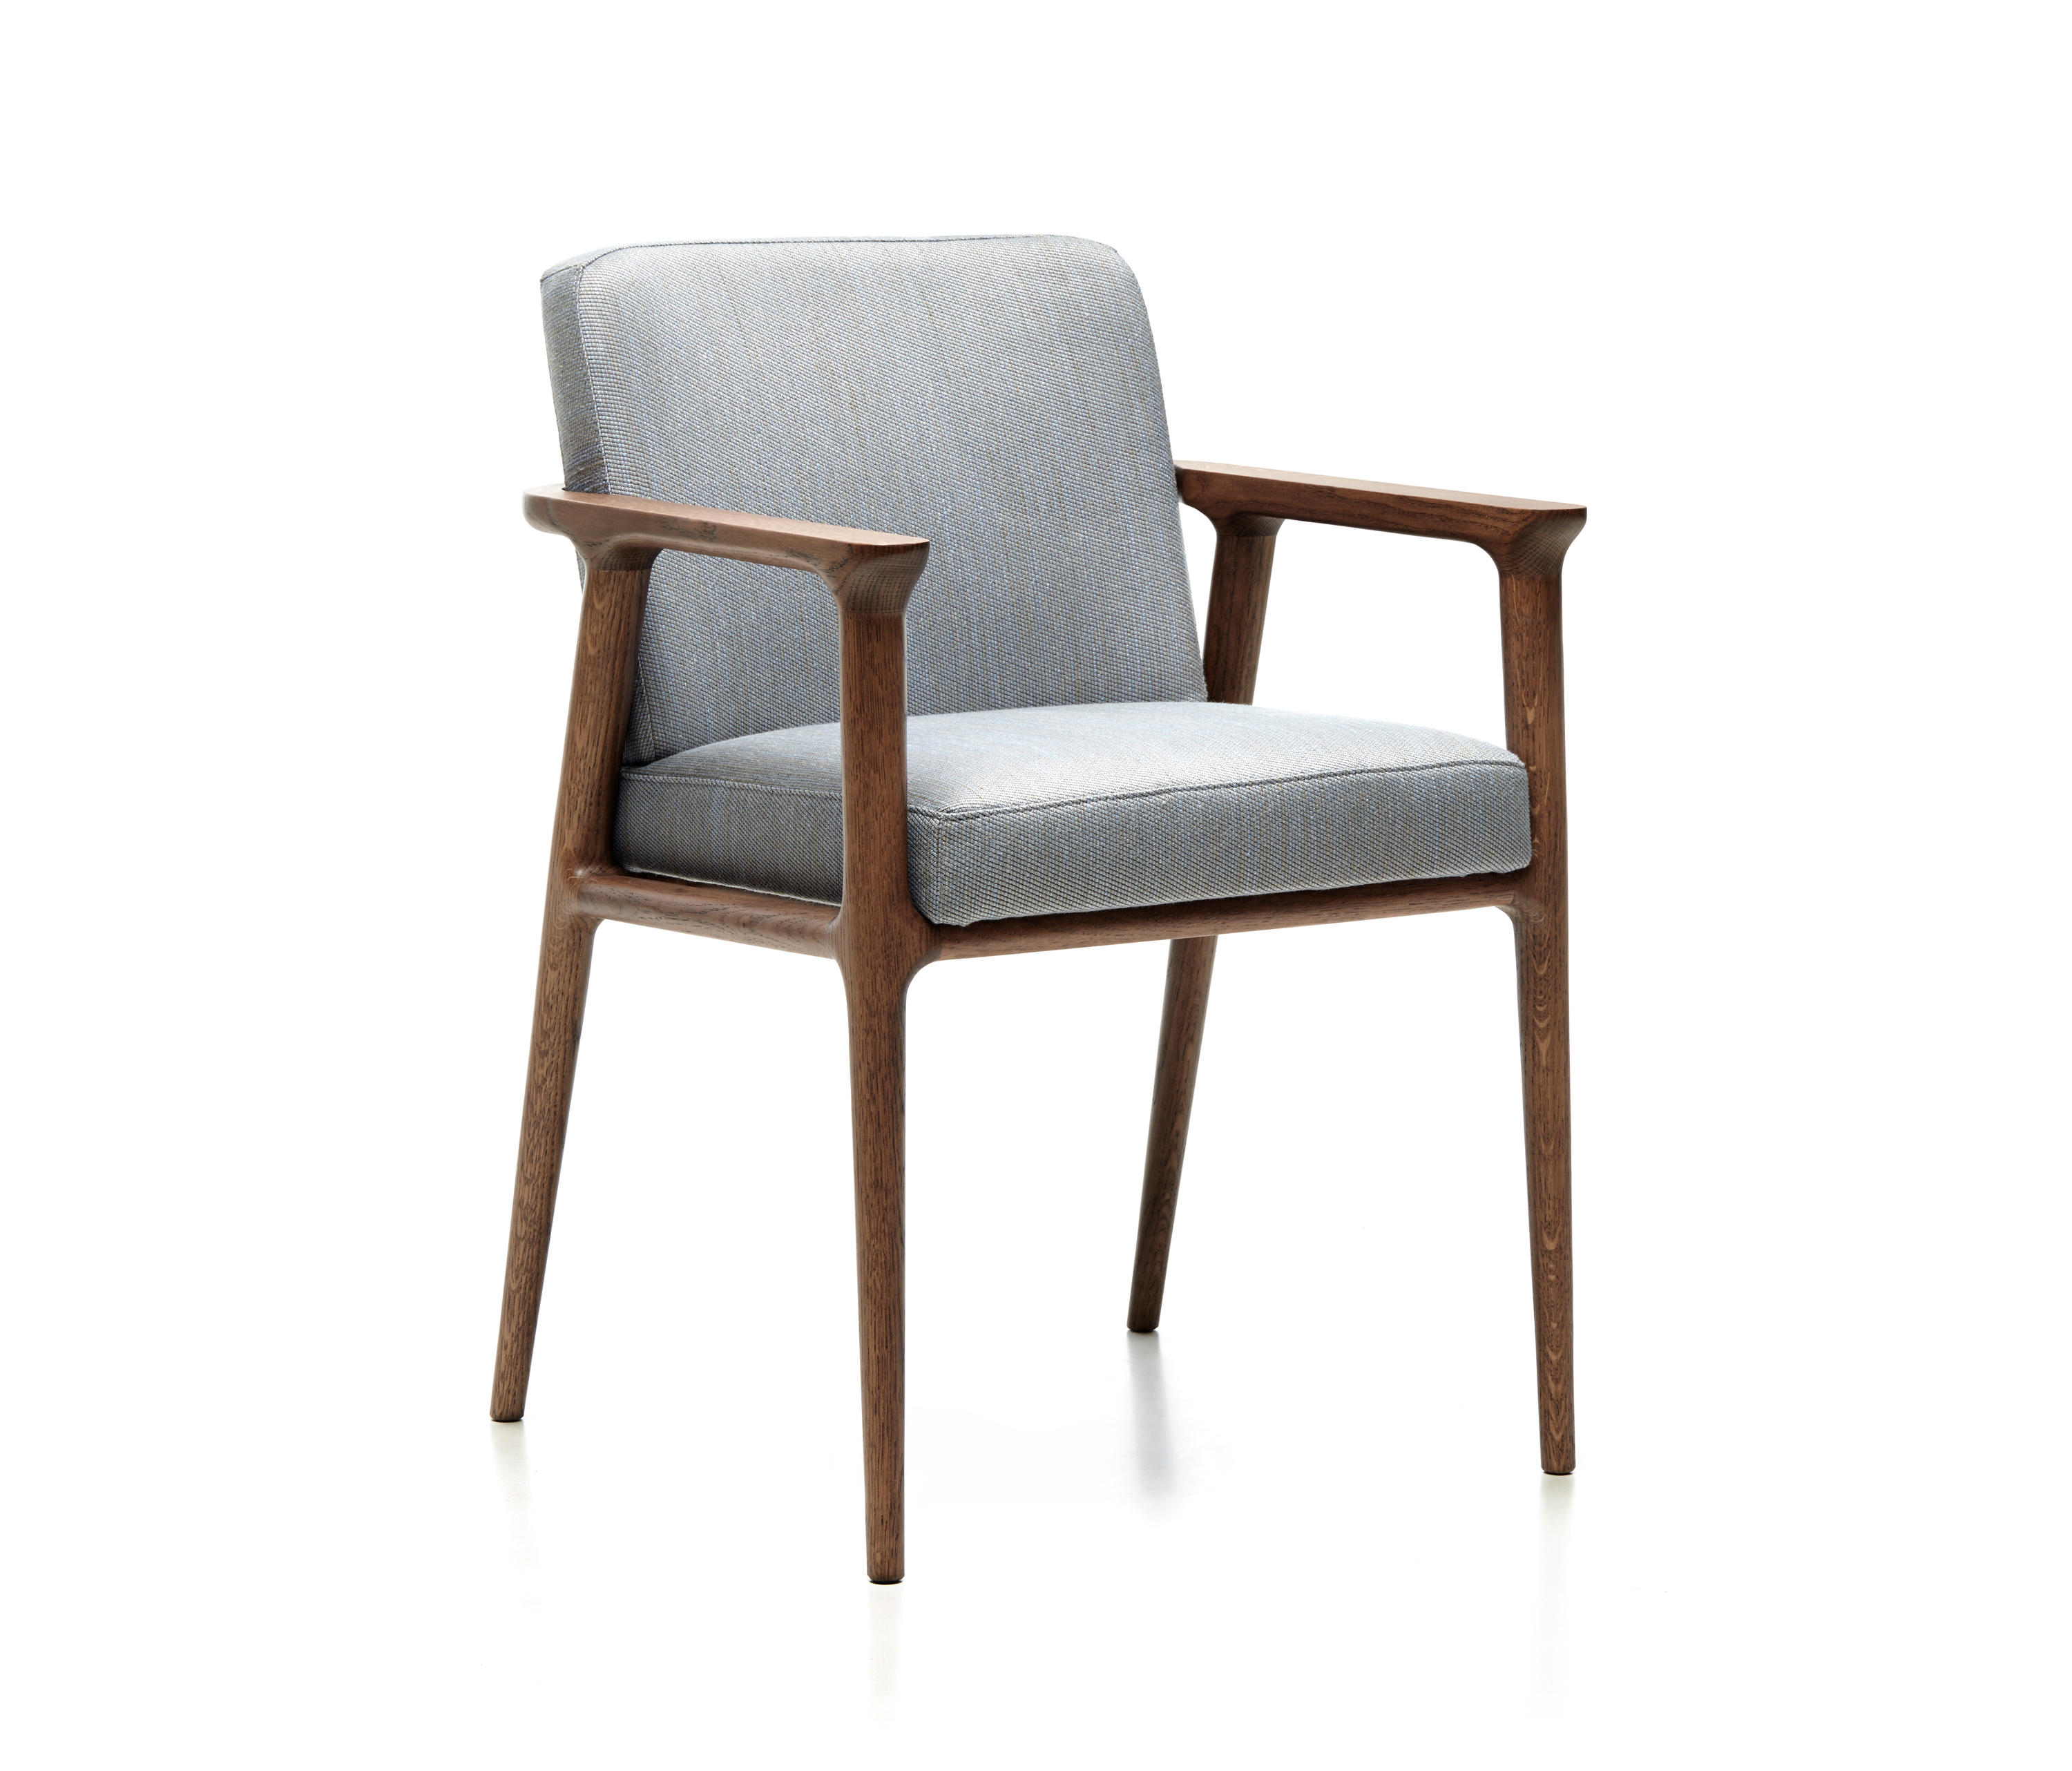 Zio dining chair restaurant chairs from moooi architonic for Restaurant furniture